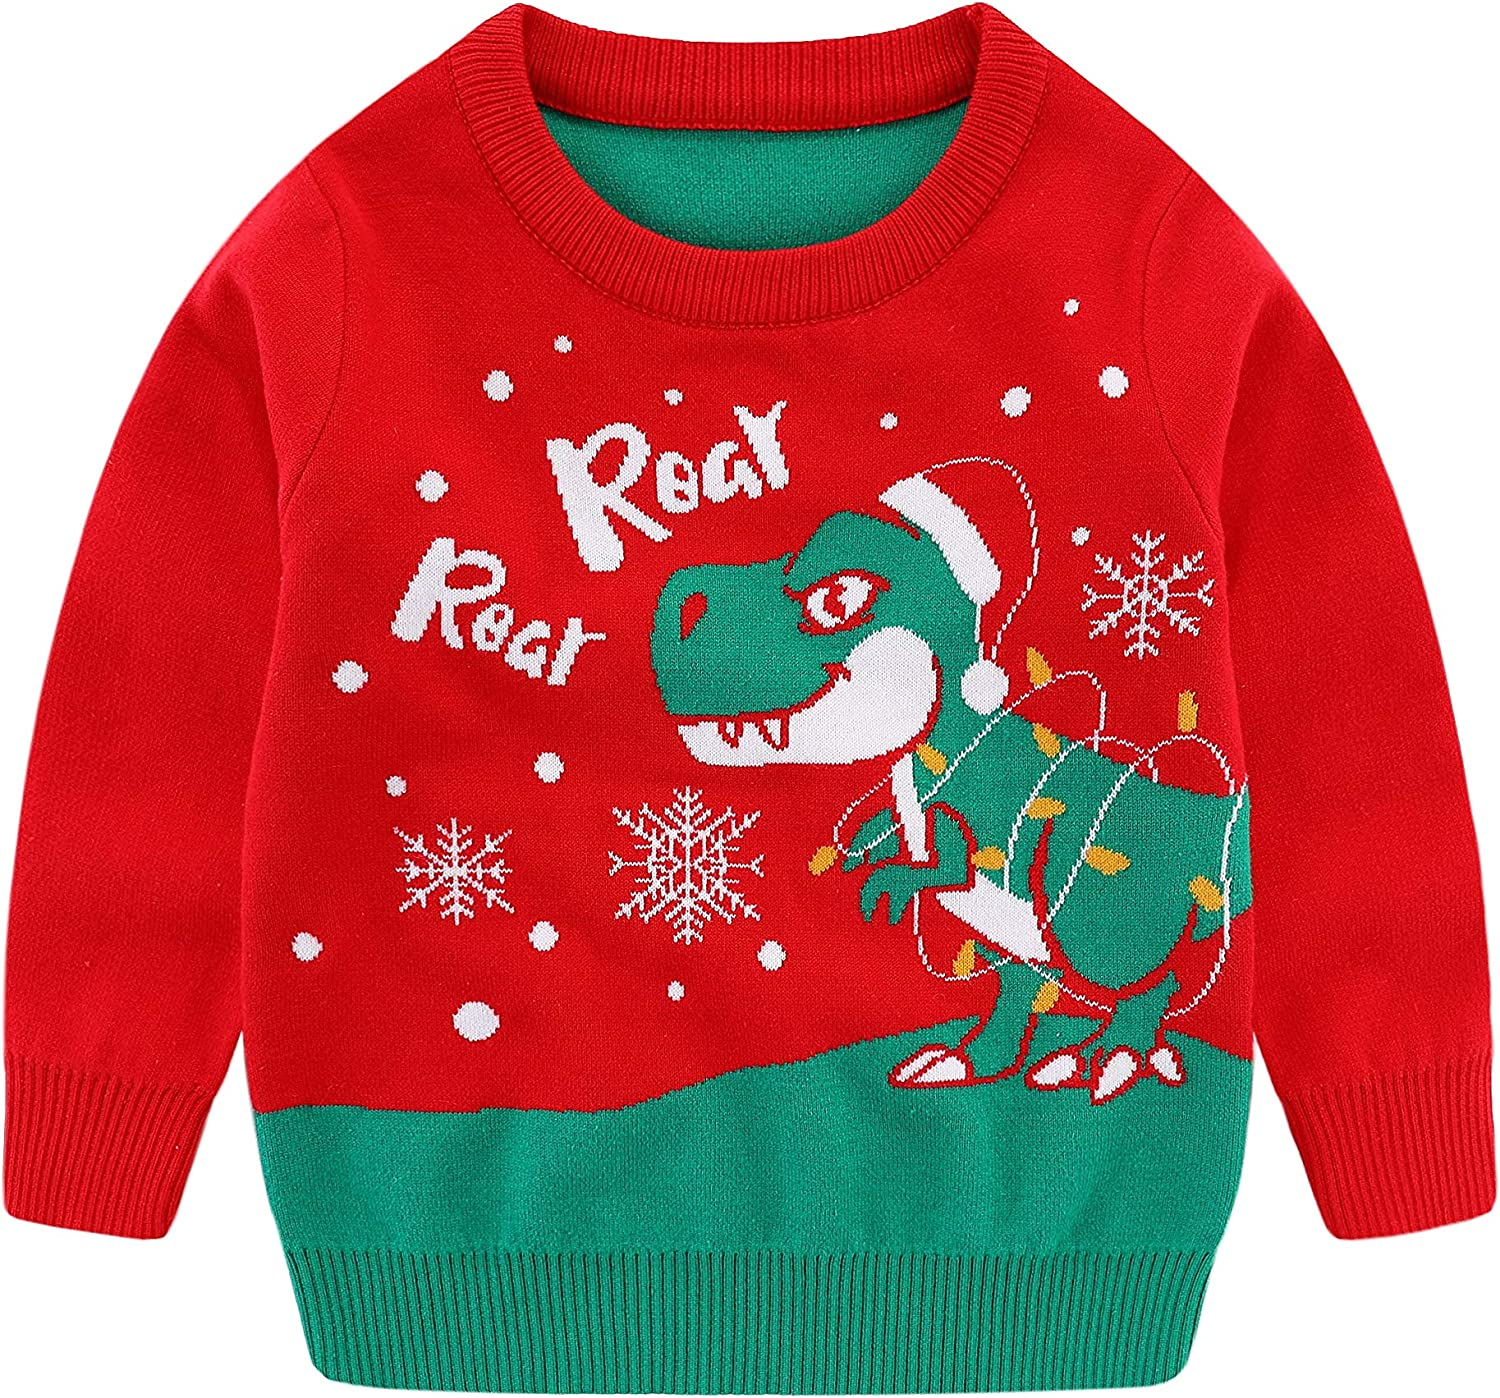 Unisex Kids Ugly Christmas Sweater Boys Girls Knitted Pullover Jumper Fall Winter Warm Outfit Clothes Xmas Gift